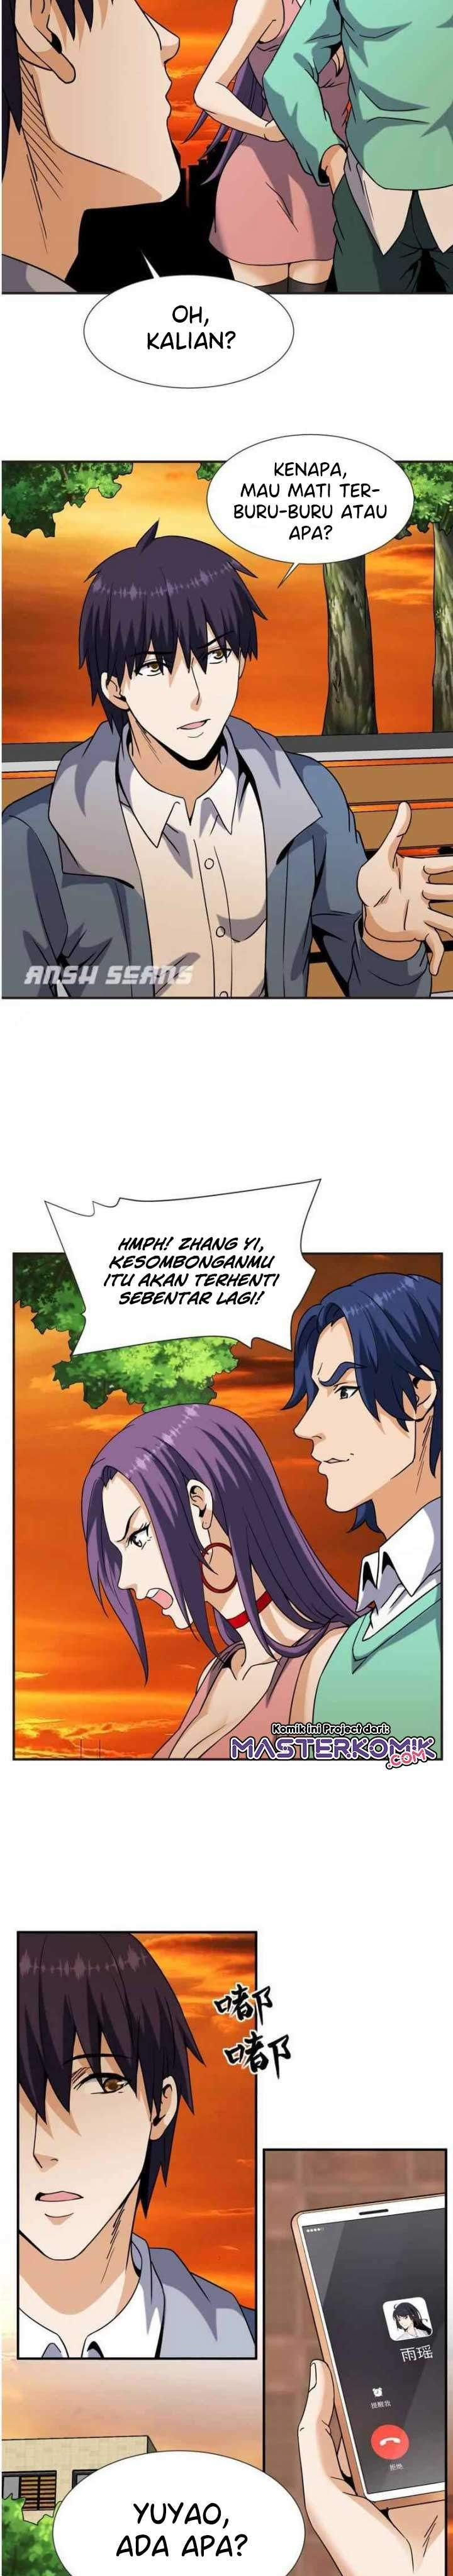 City Immortal Emperor: Dragon King Temple Chapter 59